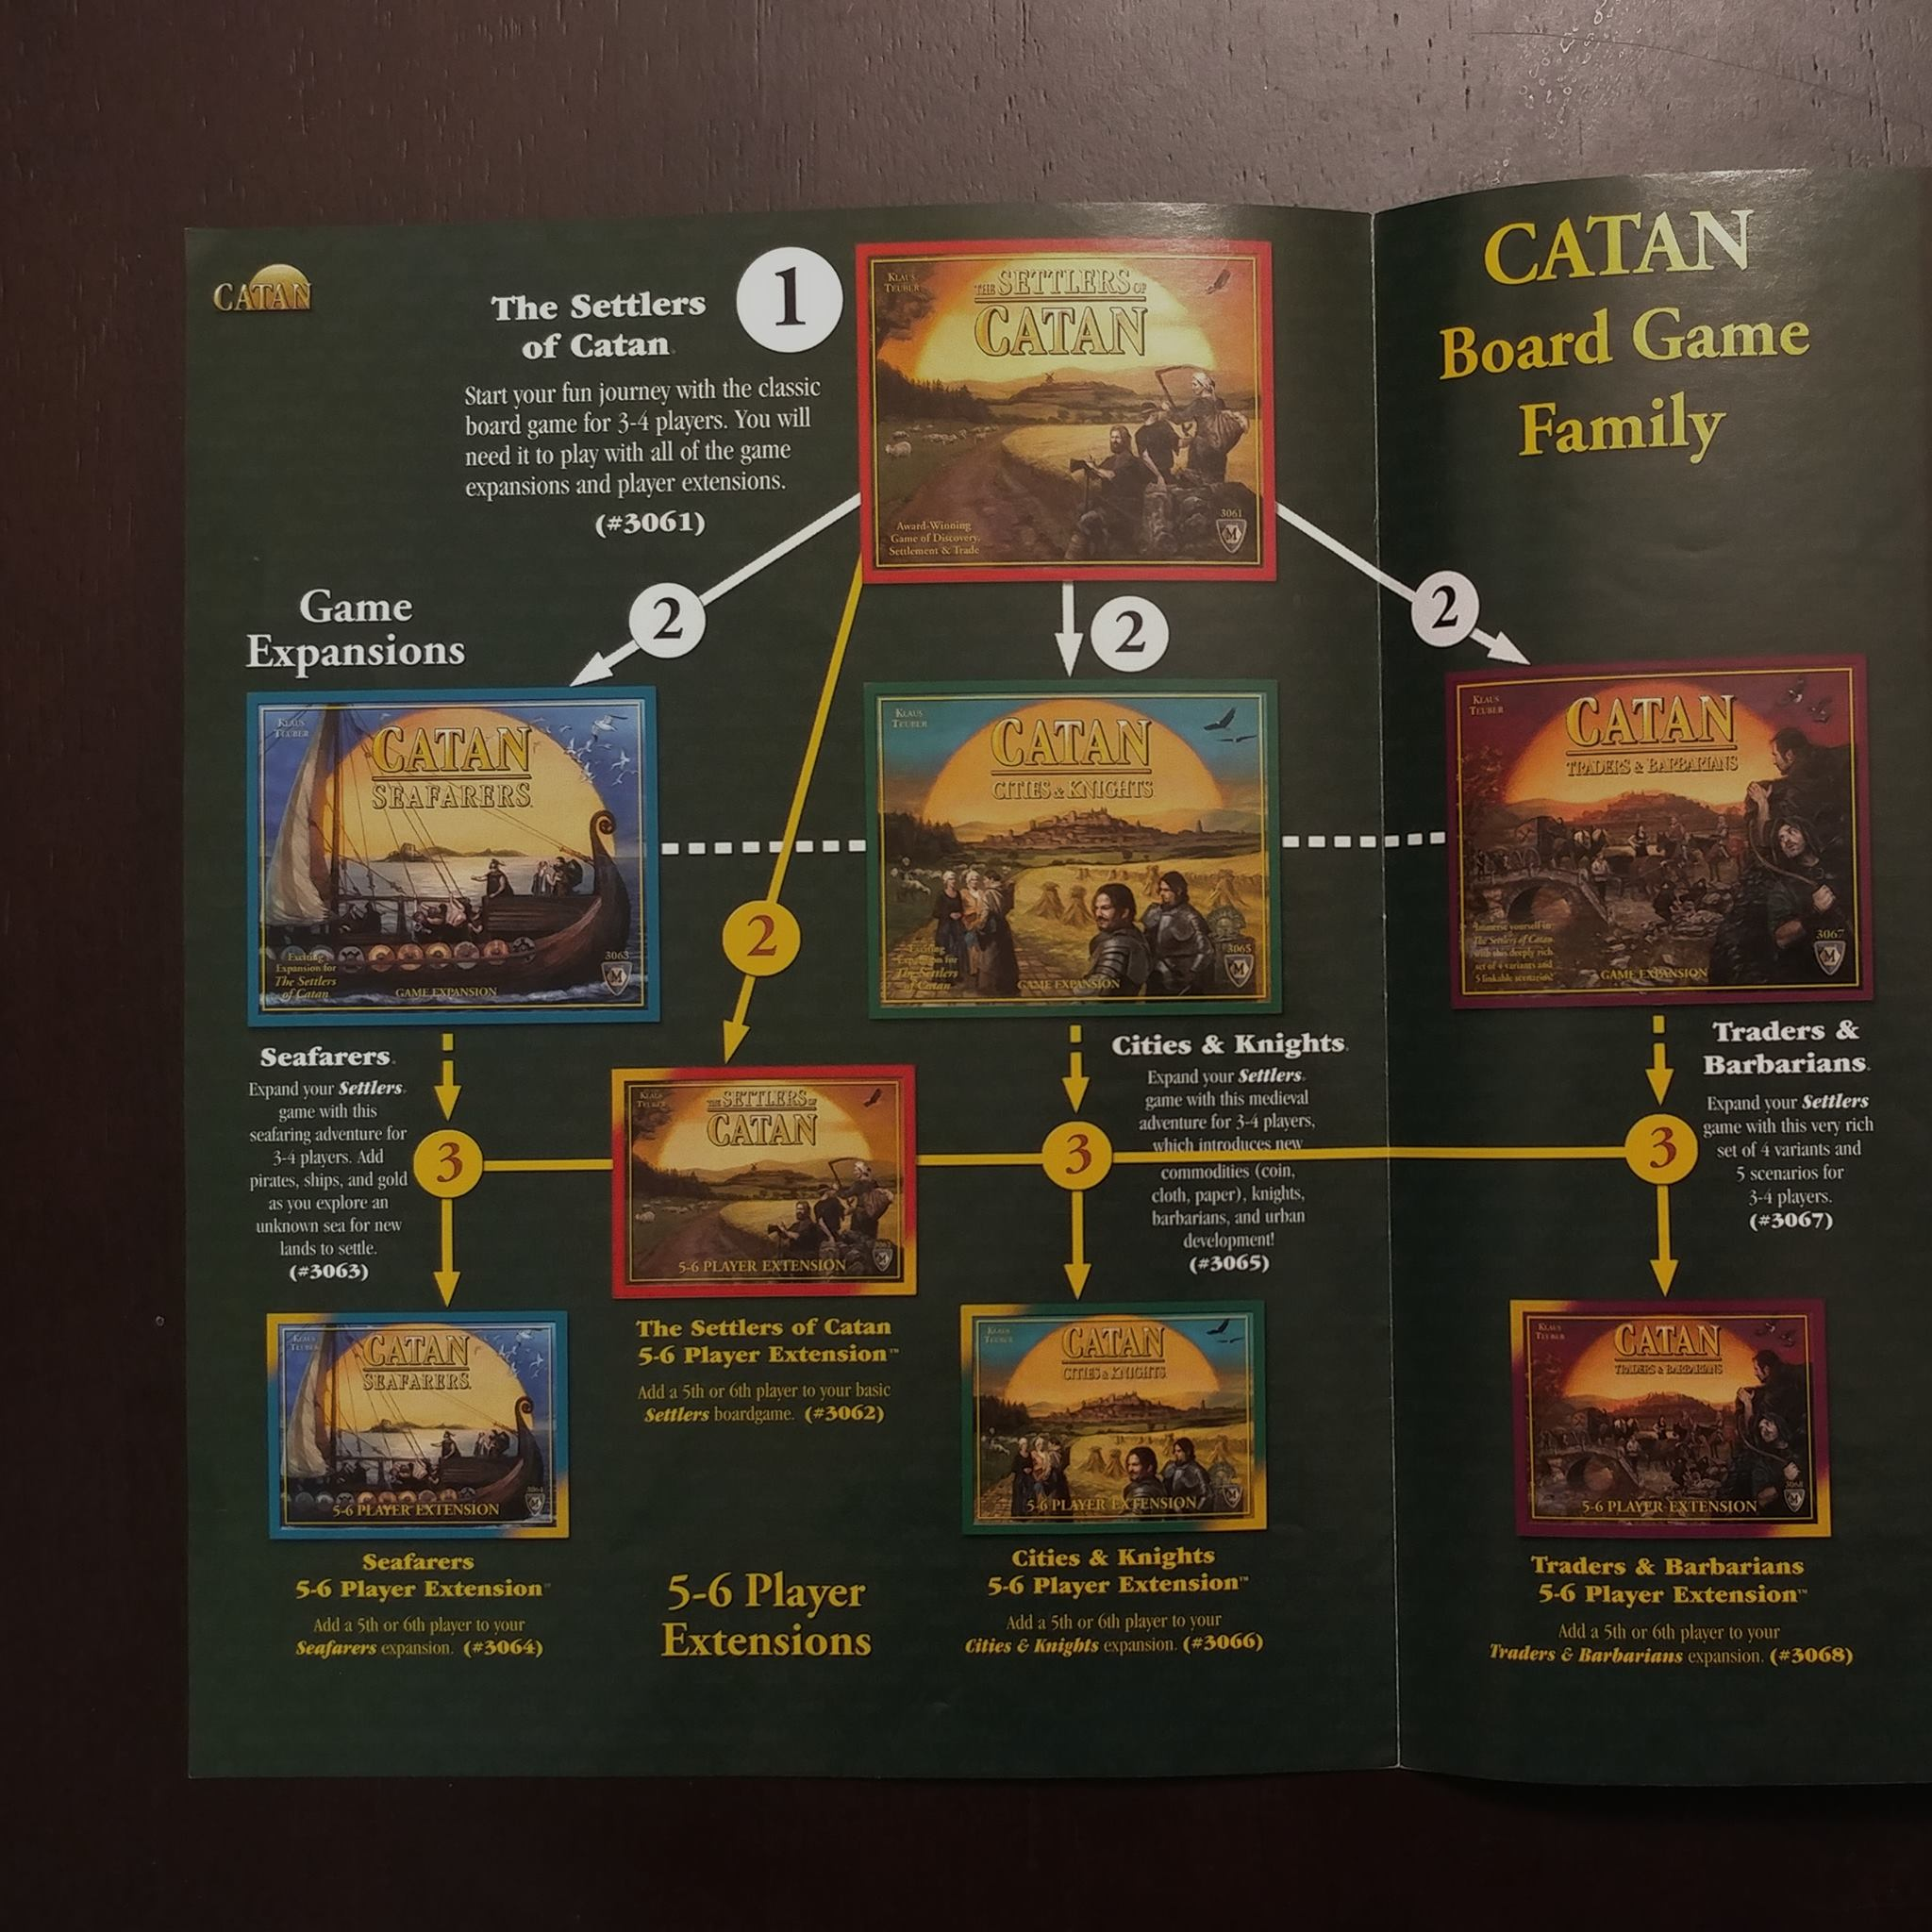 Settlers of Catan board game family infographic